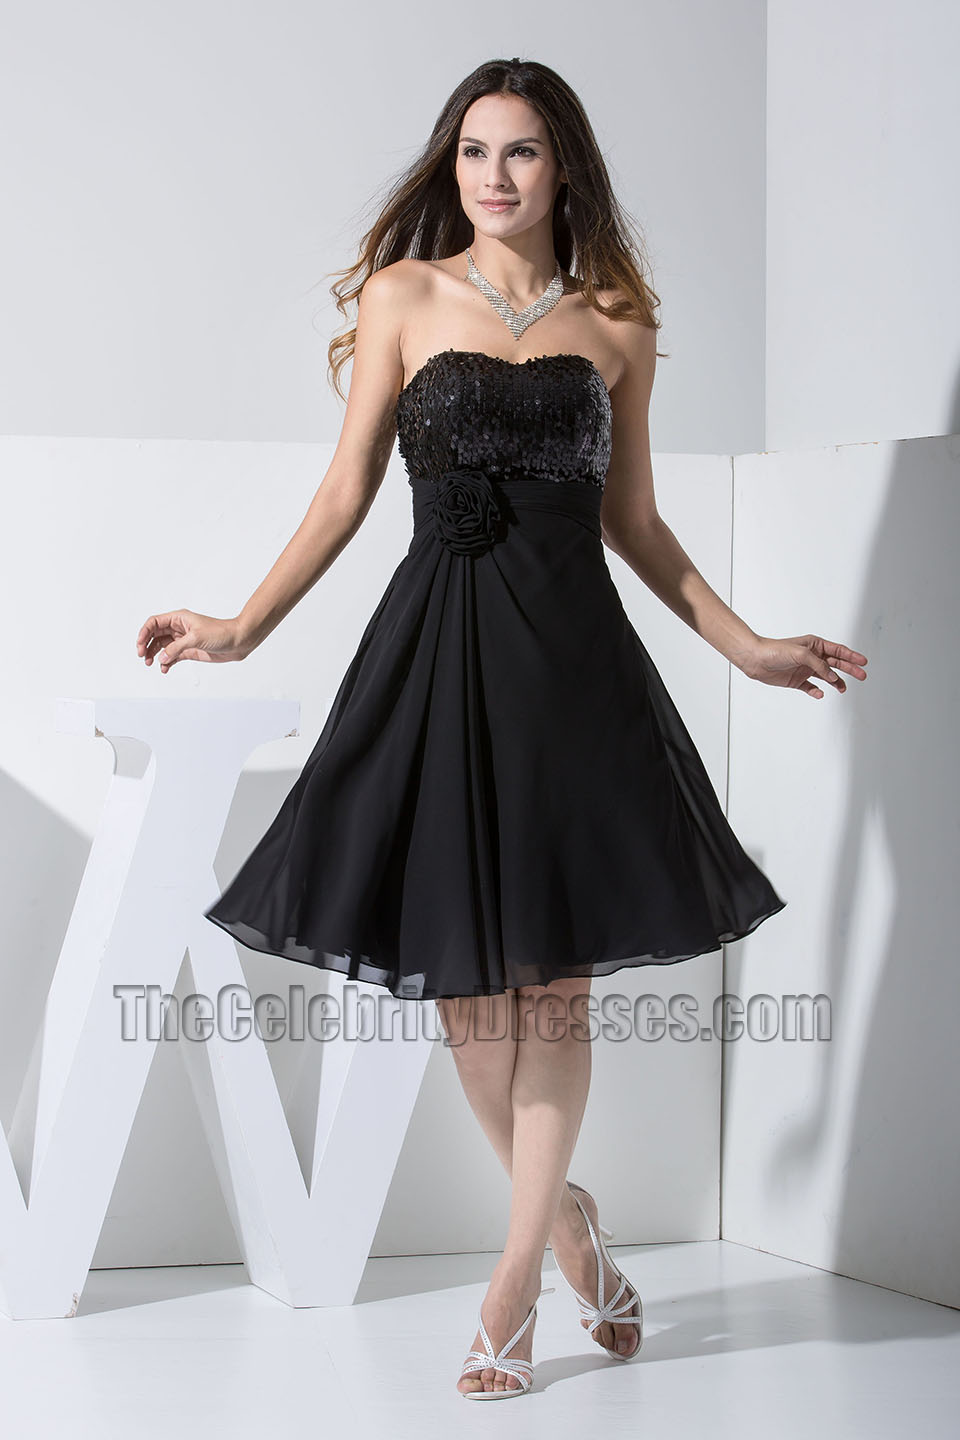 New Style Black Strapless Cocktail Dresses Party ...